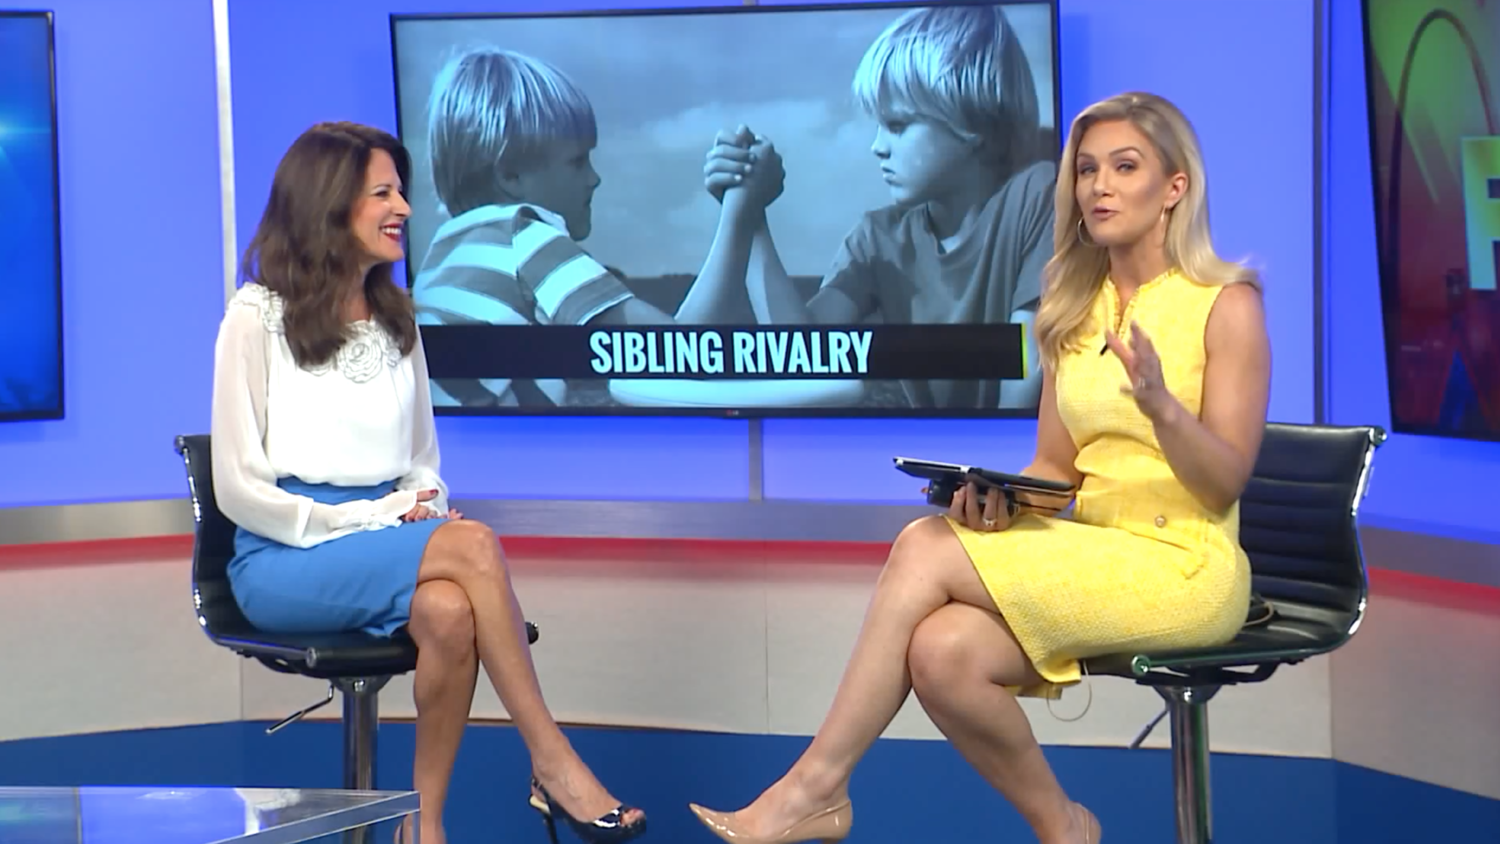 Is It Sibling Rivalry Or Bullying >> Sibling Rivalry Or Sibling Bullying When Does It Cross The